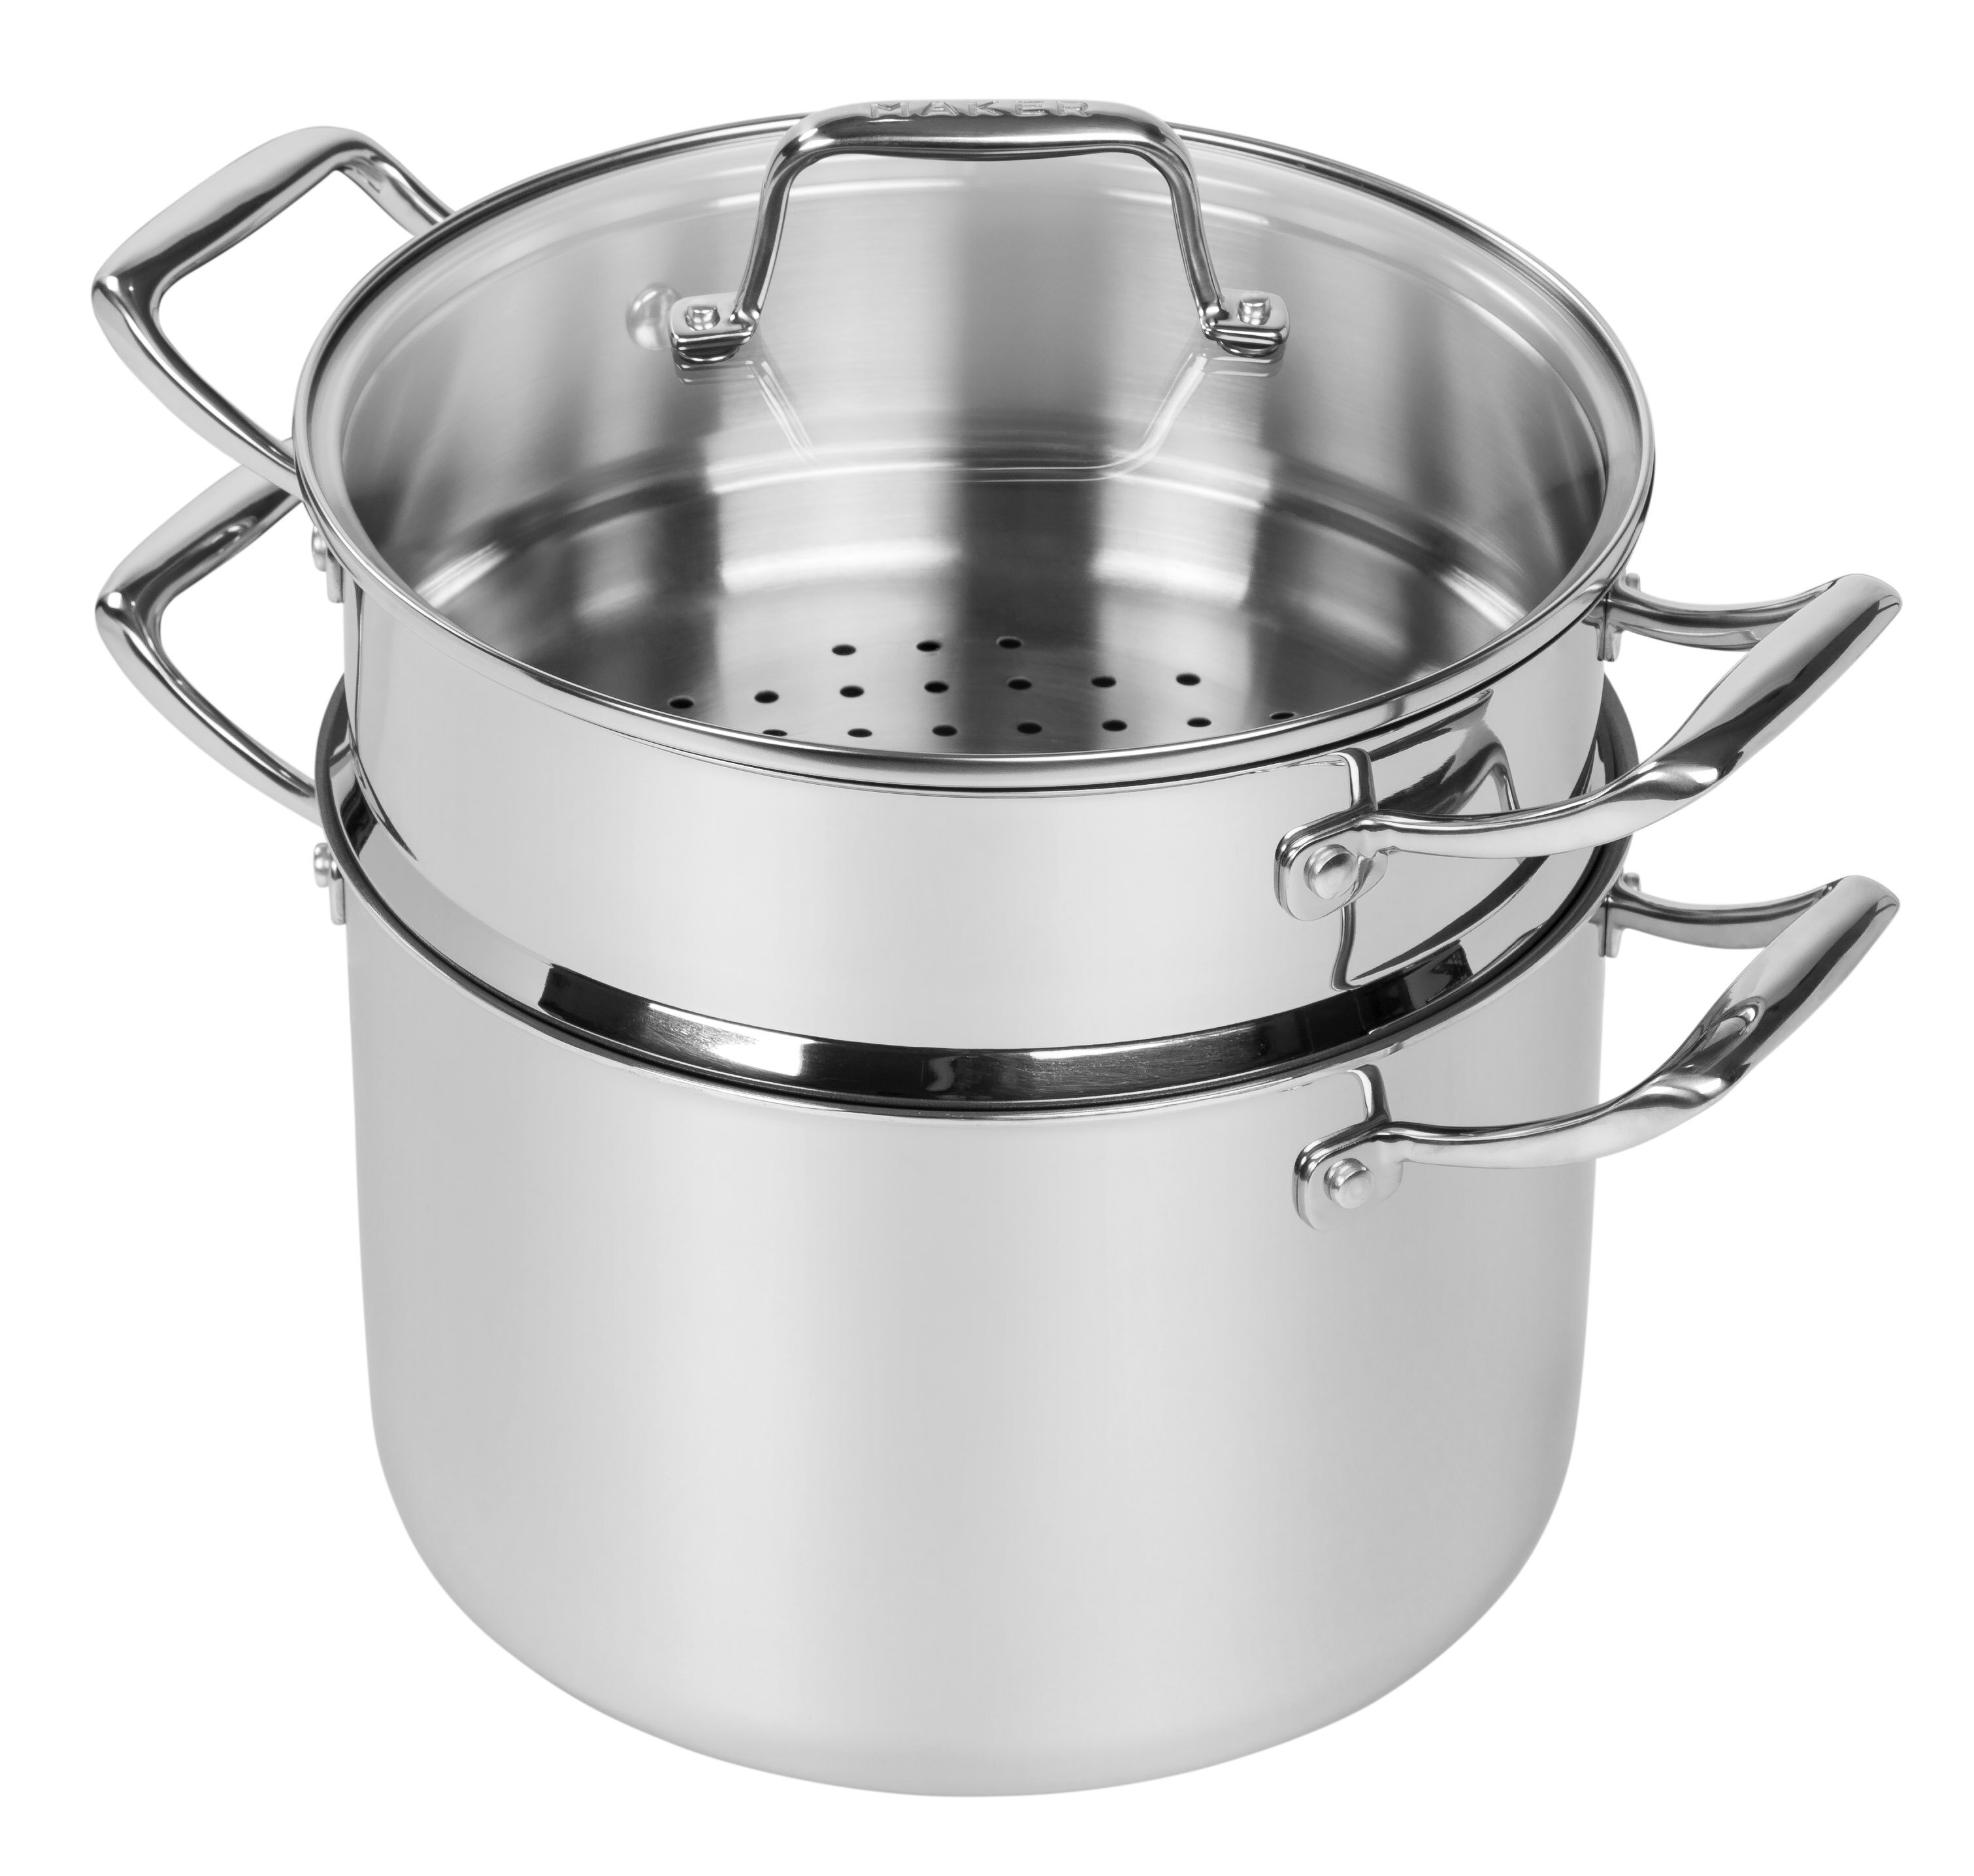 MAKER Homeware 8 Qt Stock Pot With Steamer Insert And Lid Reviews